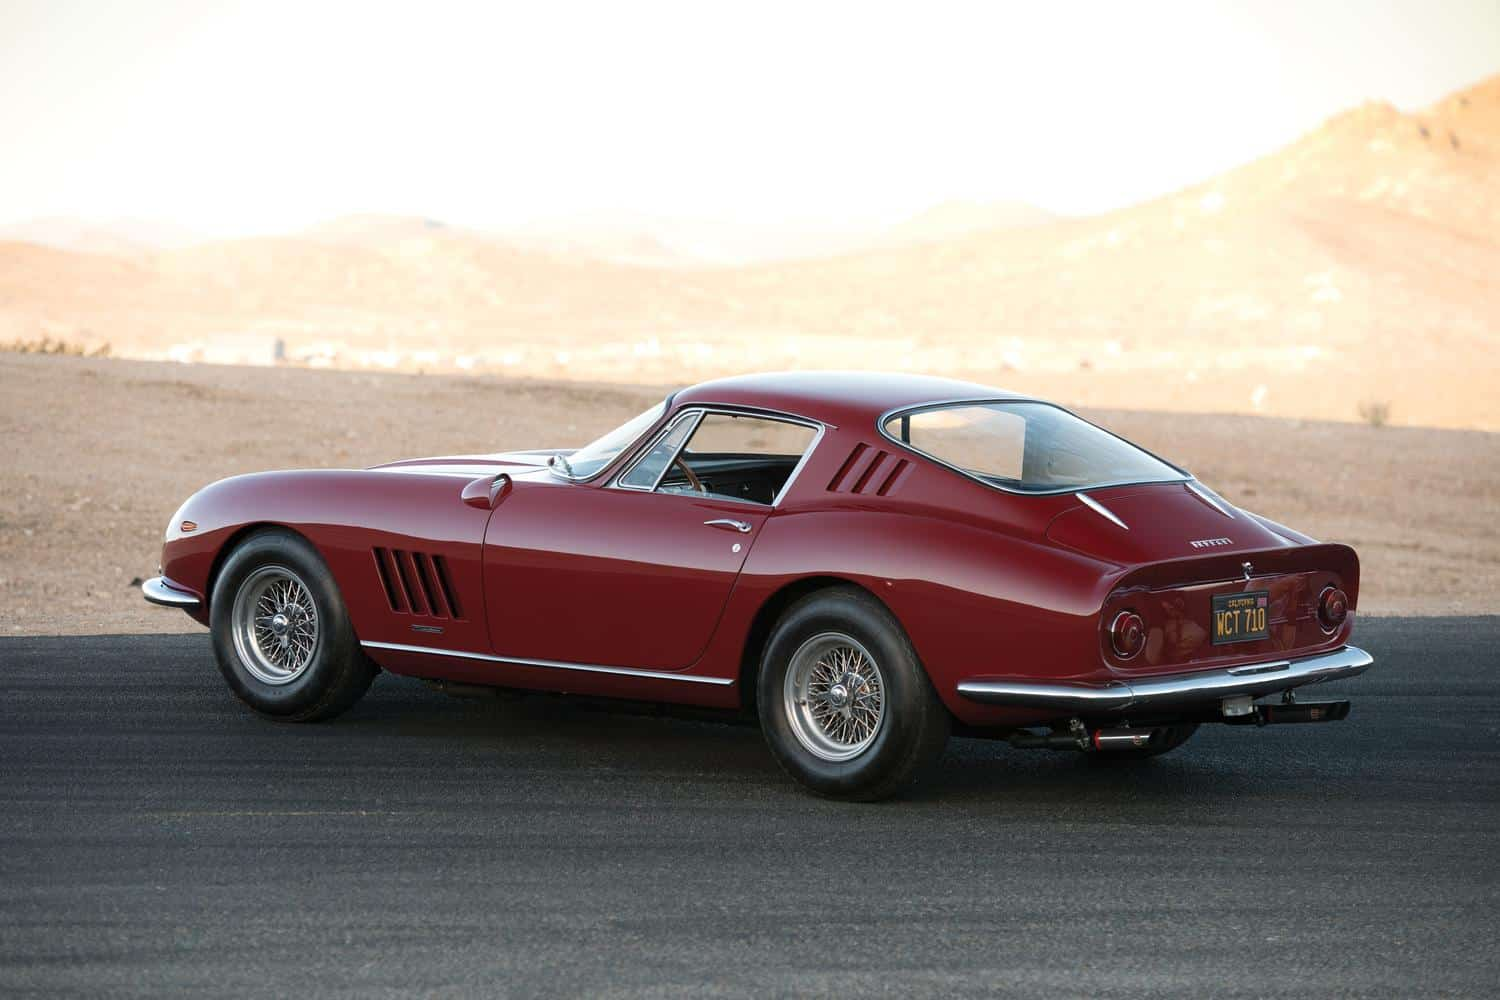 Steve McQueen once owned this Ferrari 275 GTB/4